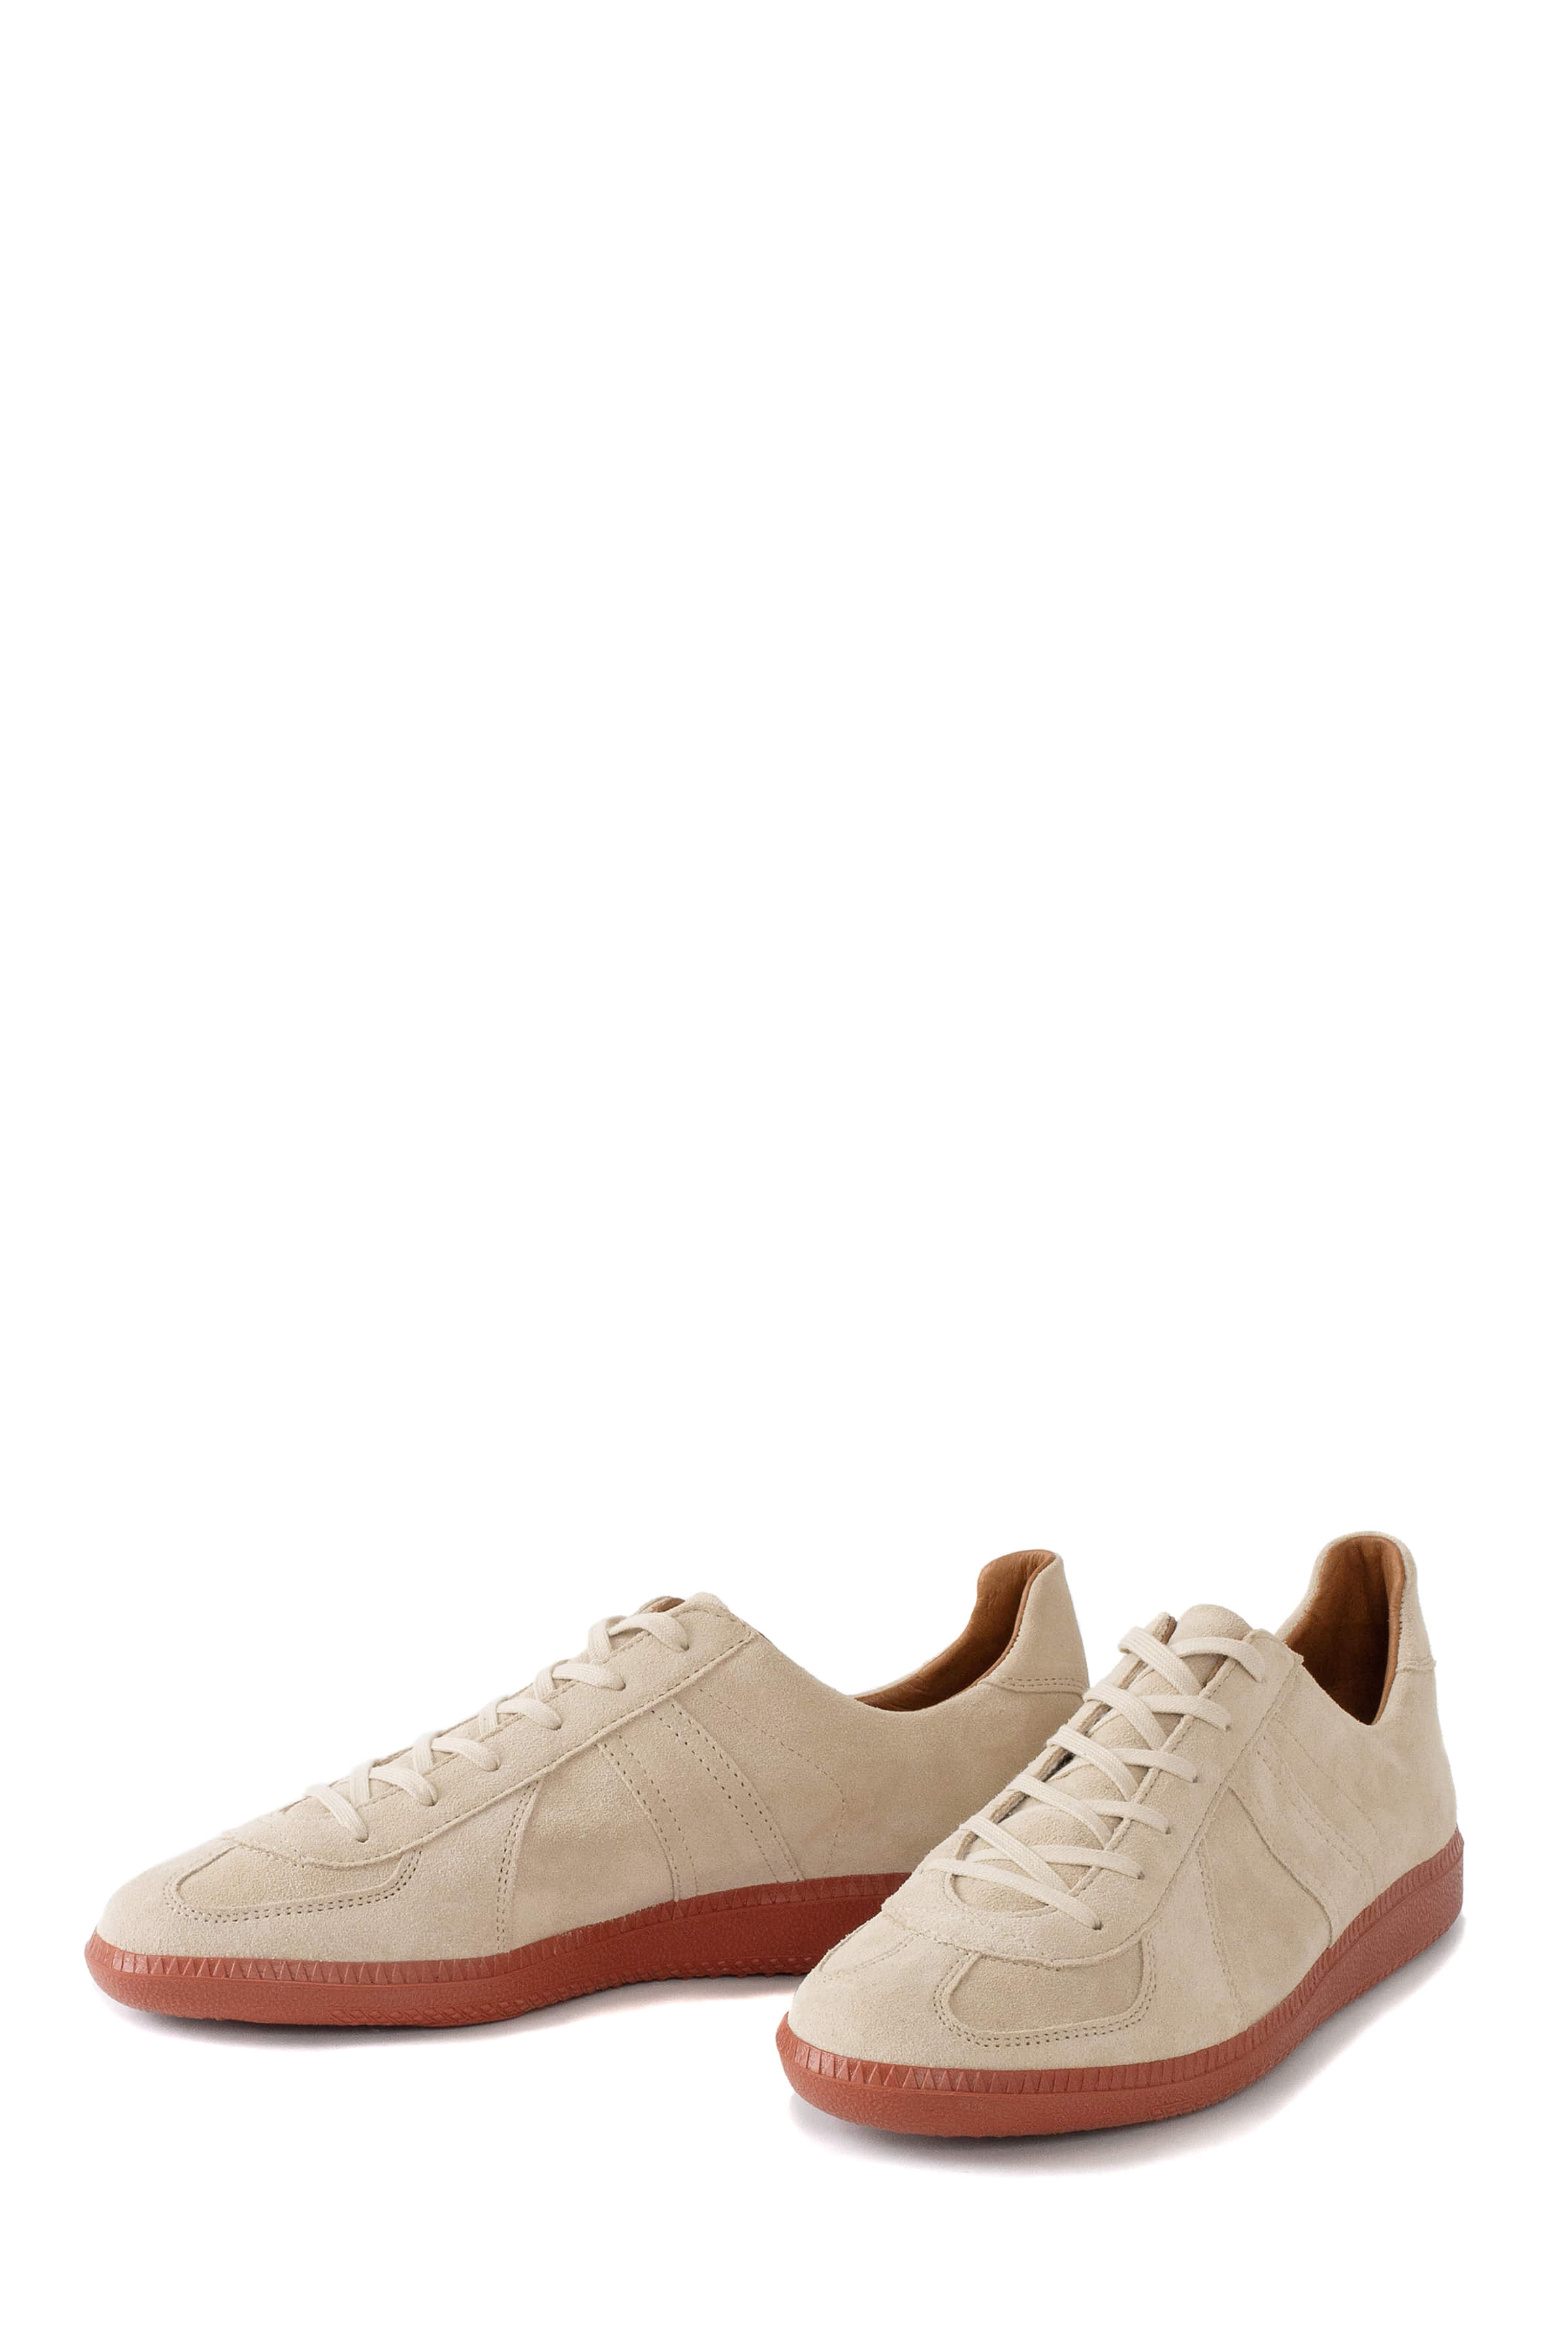 REPRODUCTION OF FOUND : German Military Trainer 1700L (Beige Suede/Brick Sole)